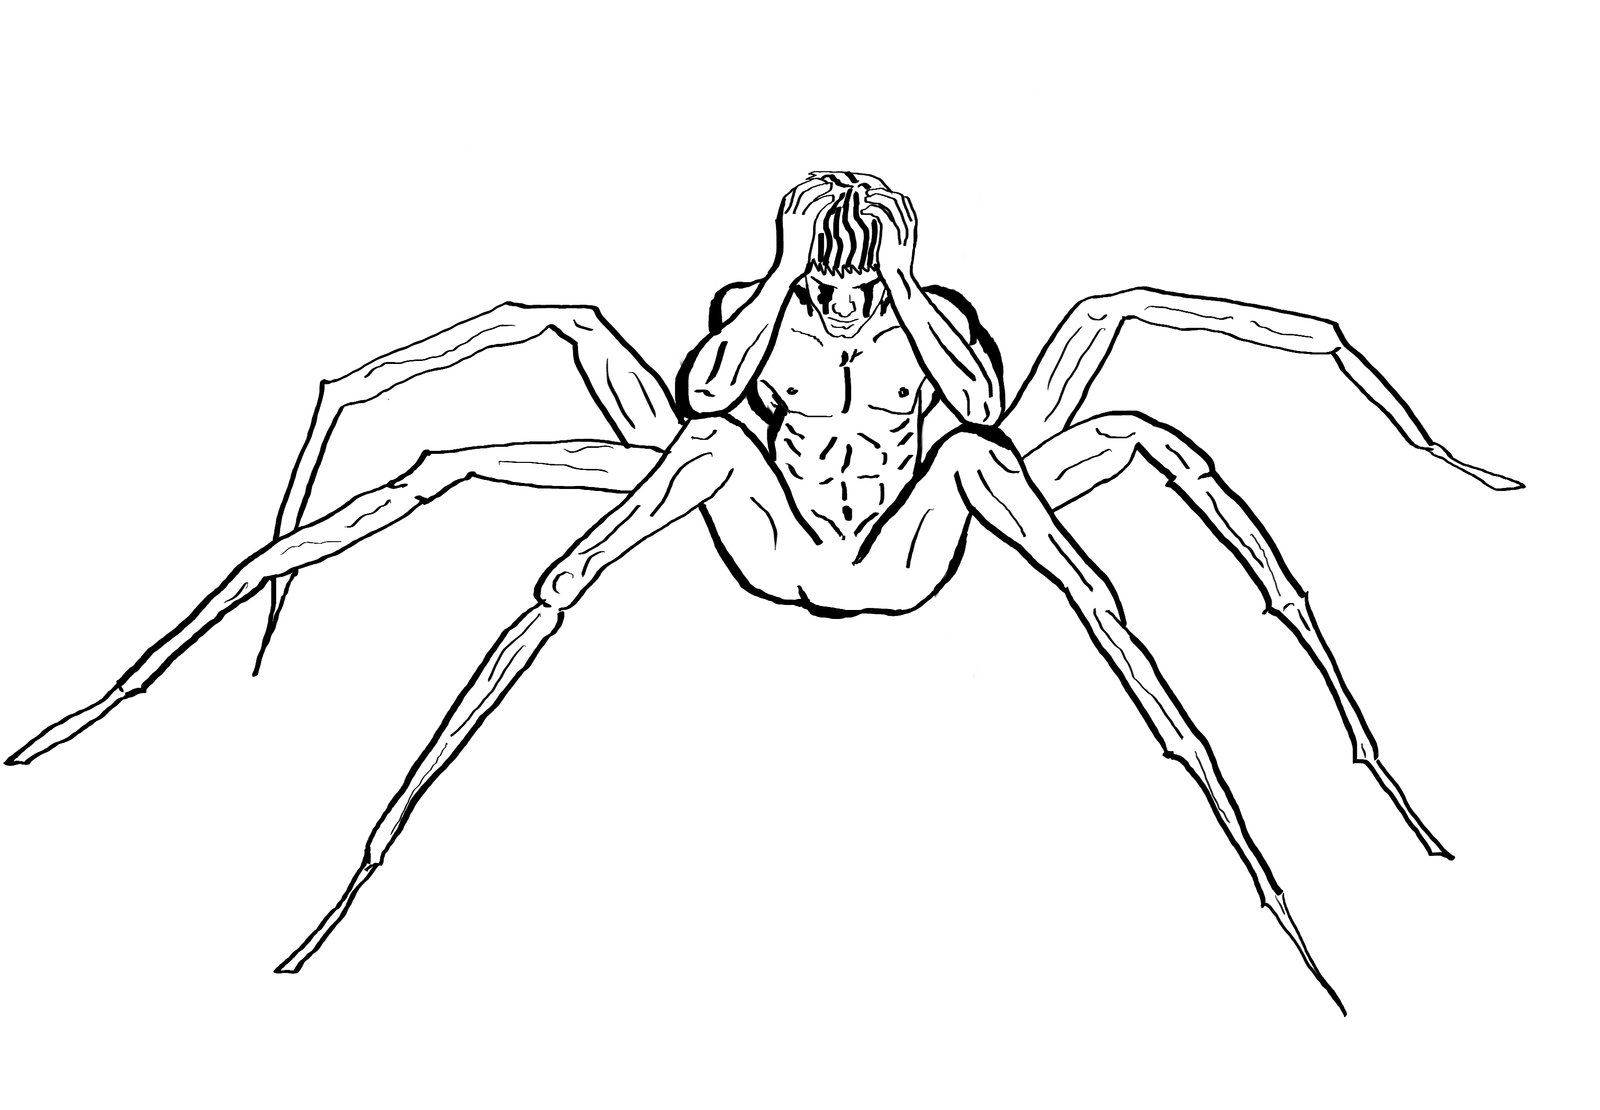 Drawn spider sketched Sketch Realistic Images Pencil Spider